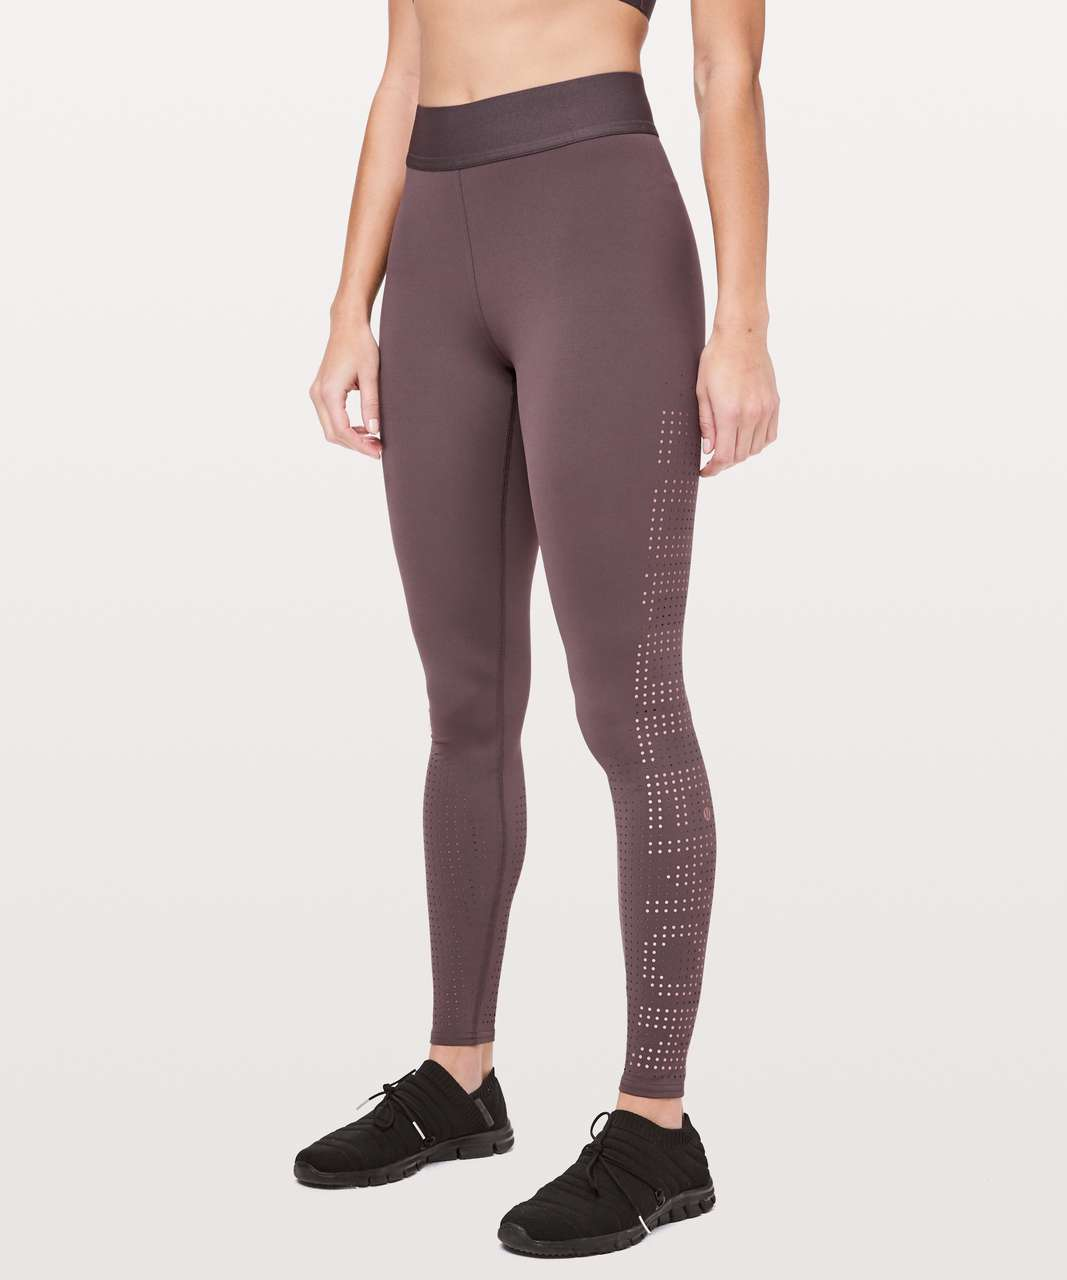 "Lululemon Ride & Reflect Tight 28"" *lululemon X SoulCycle - Purple Taupe"